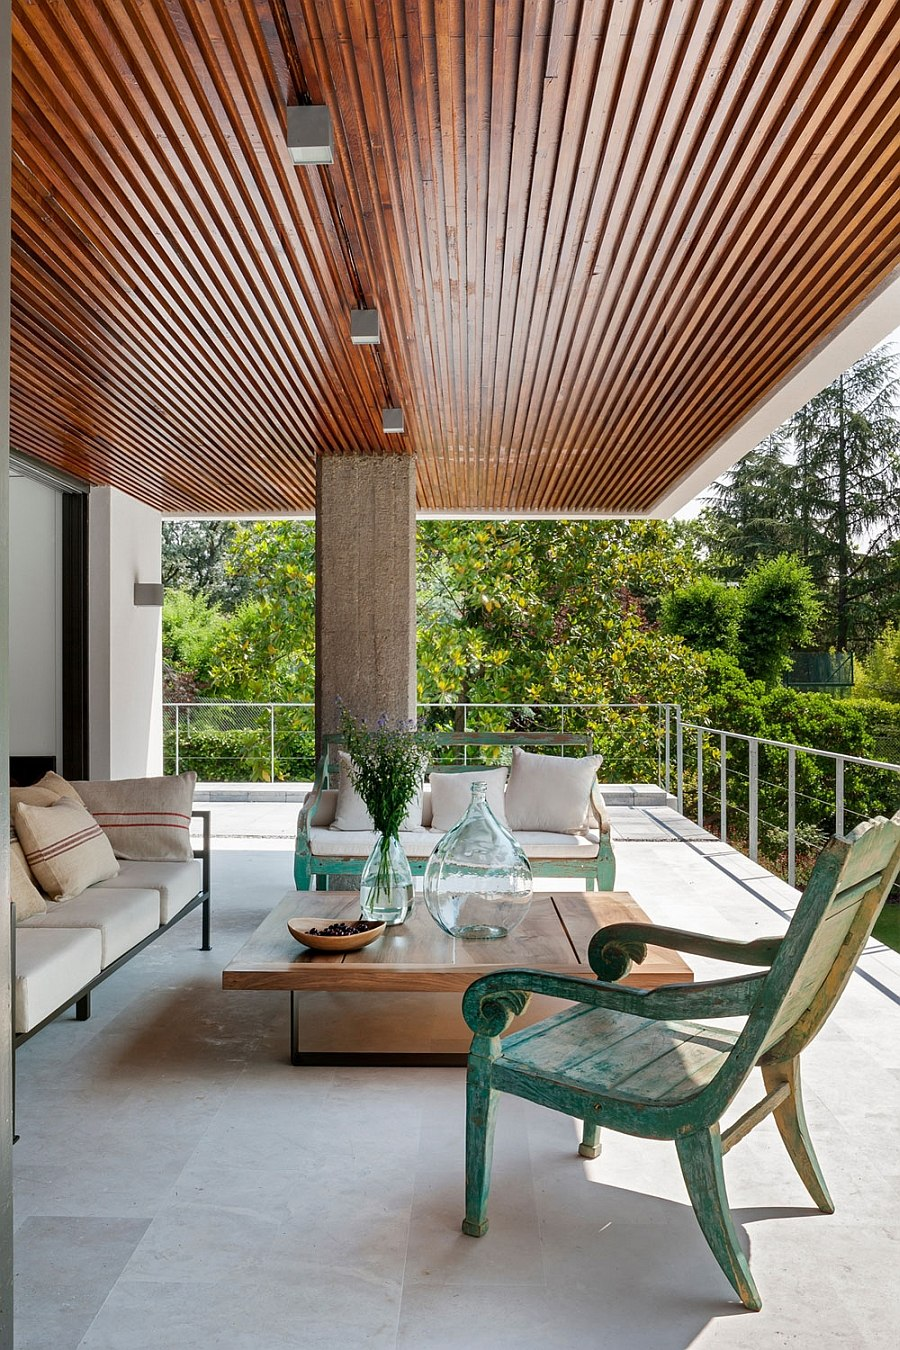 Pergola inspired design of the roof keeps away the sun